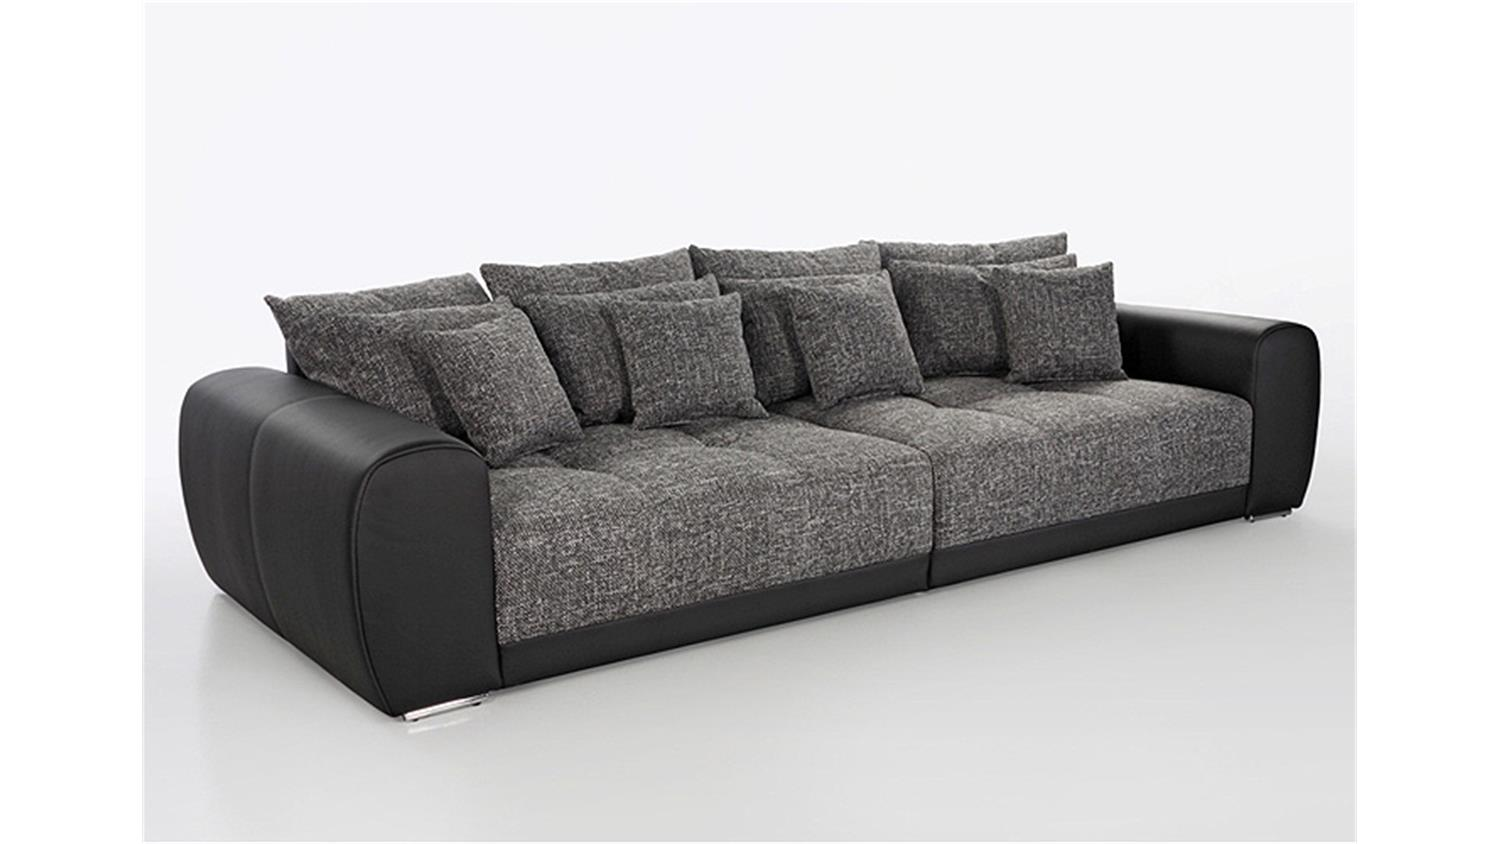 sofa sam hereo sofa. Black Bedroom Furniture Sets. Home Design Ideas